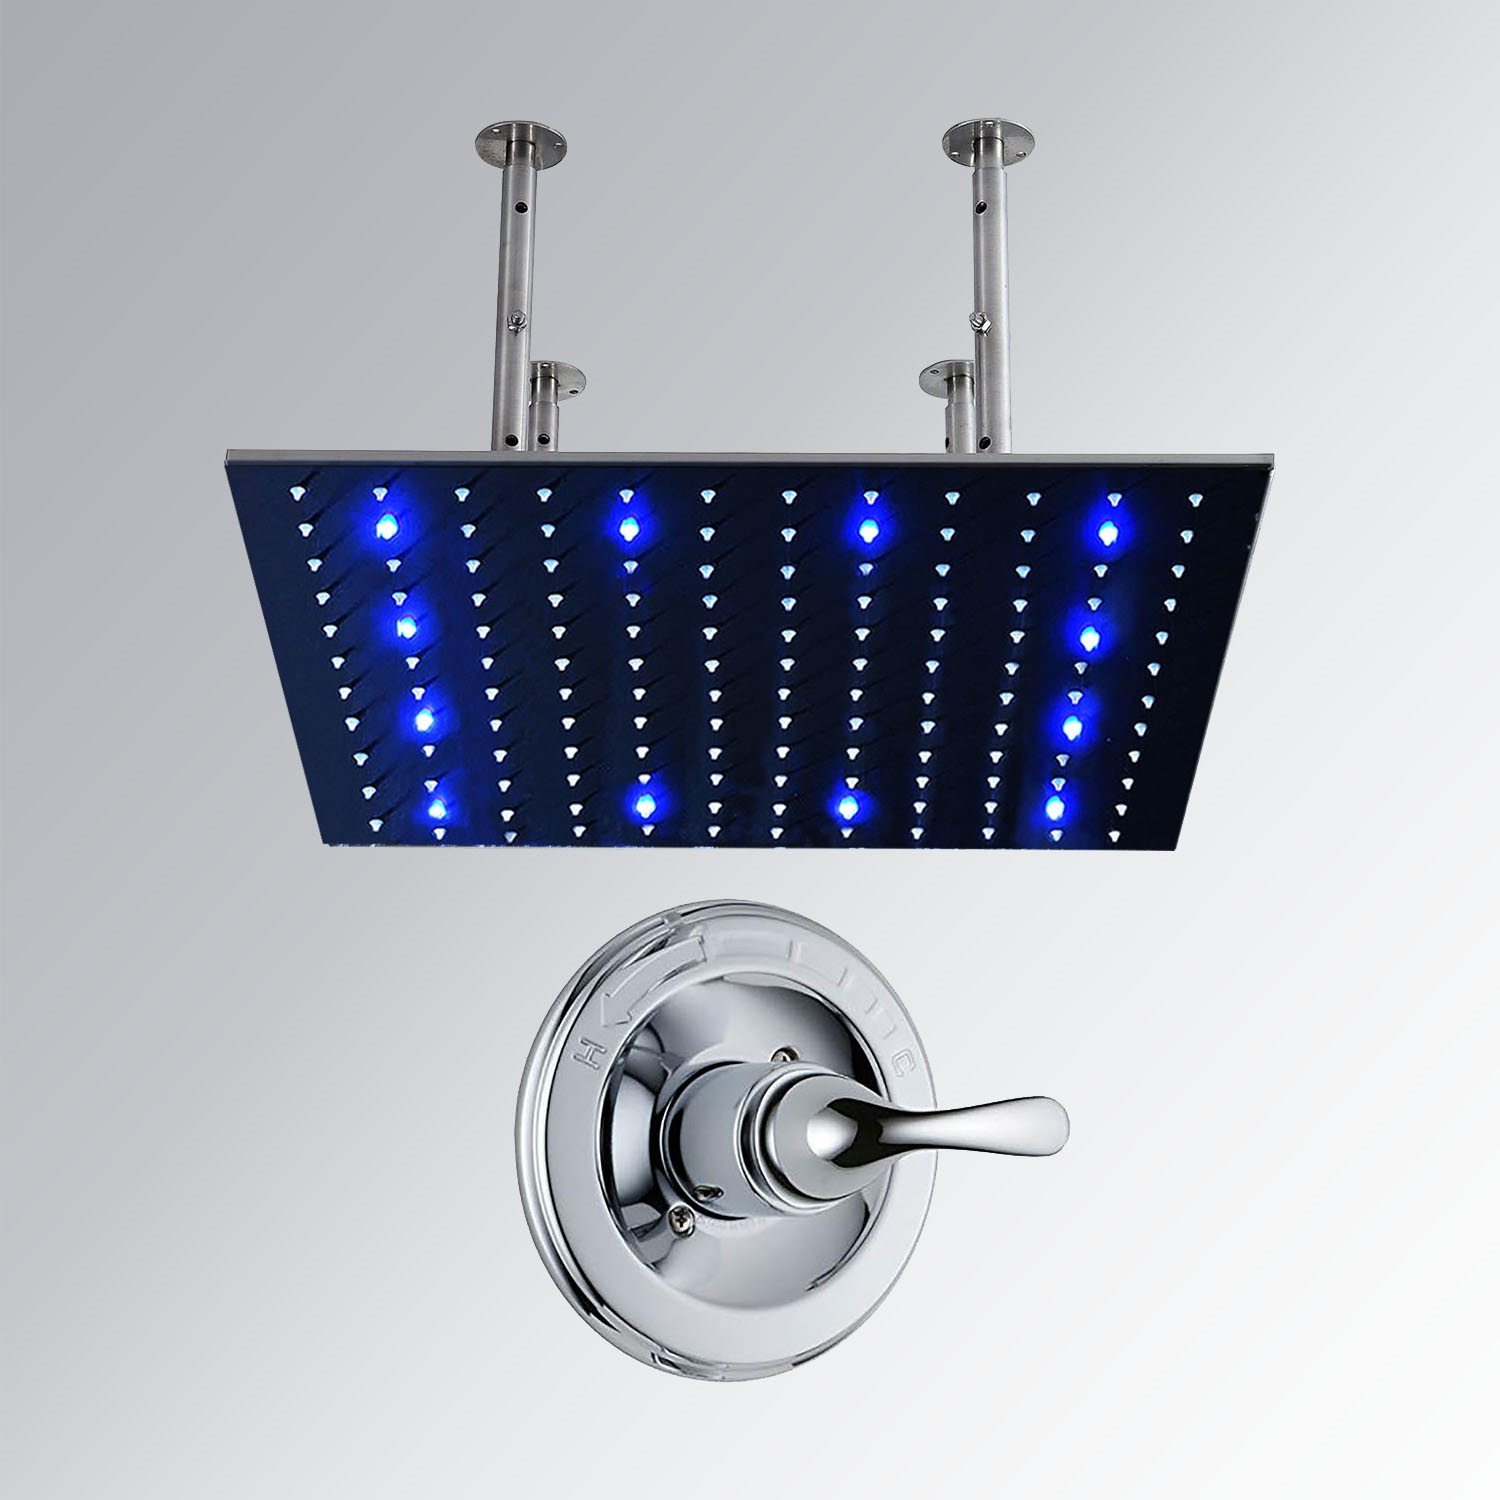 40 Quot Stainless Steel Square Color Changing Led Rain Shower Head With Built In Mixer